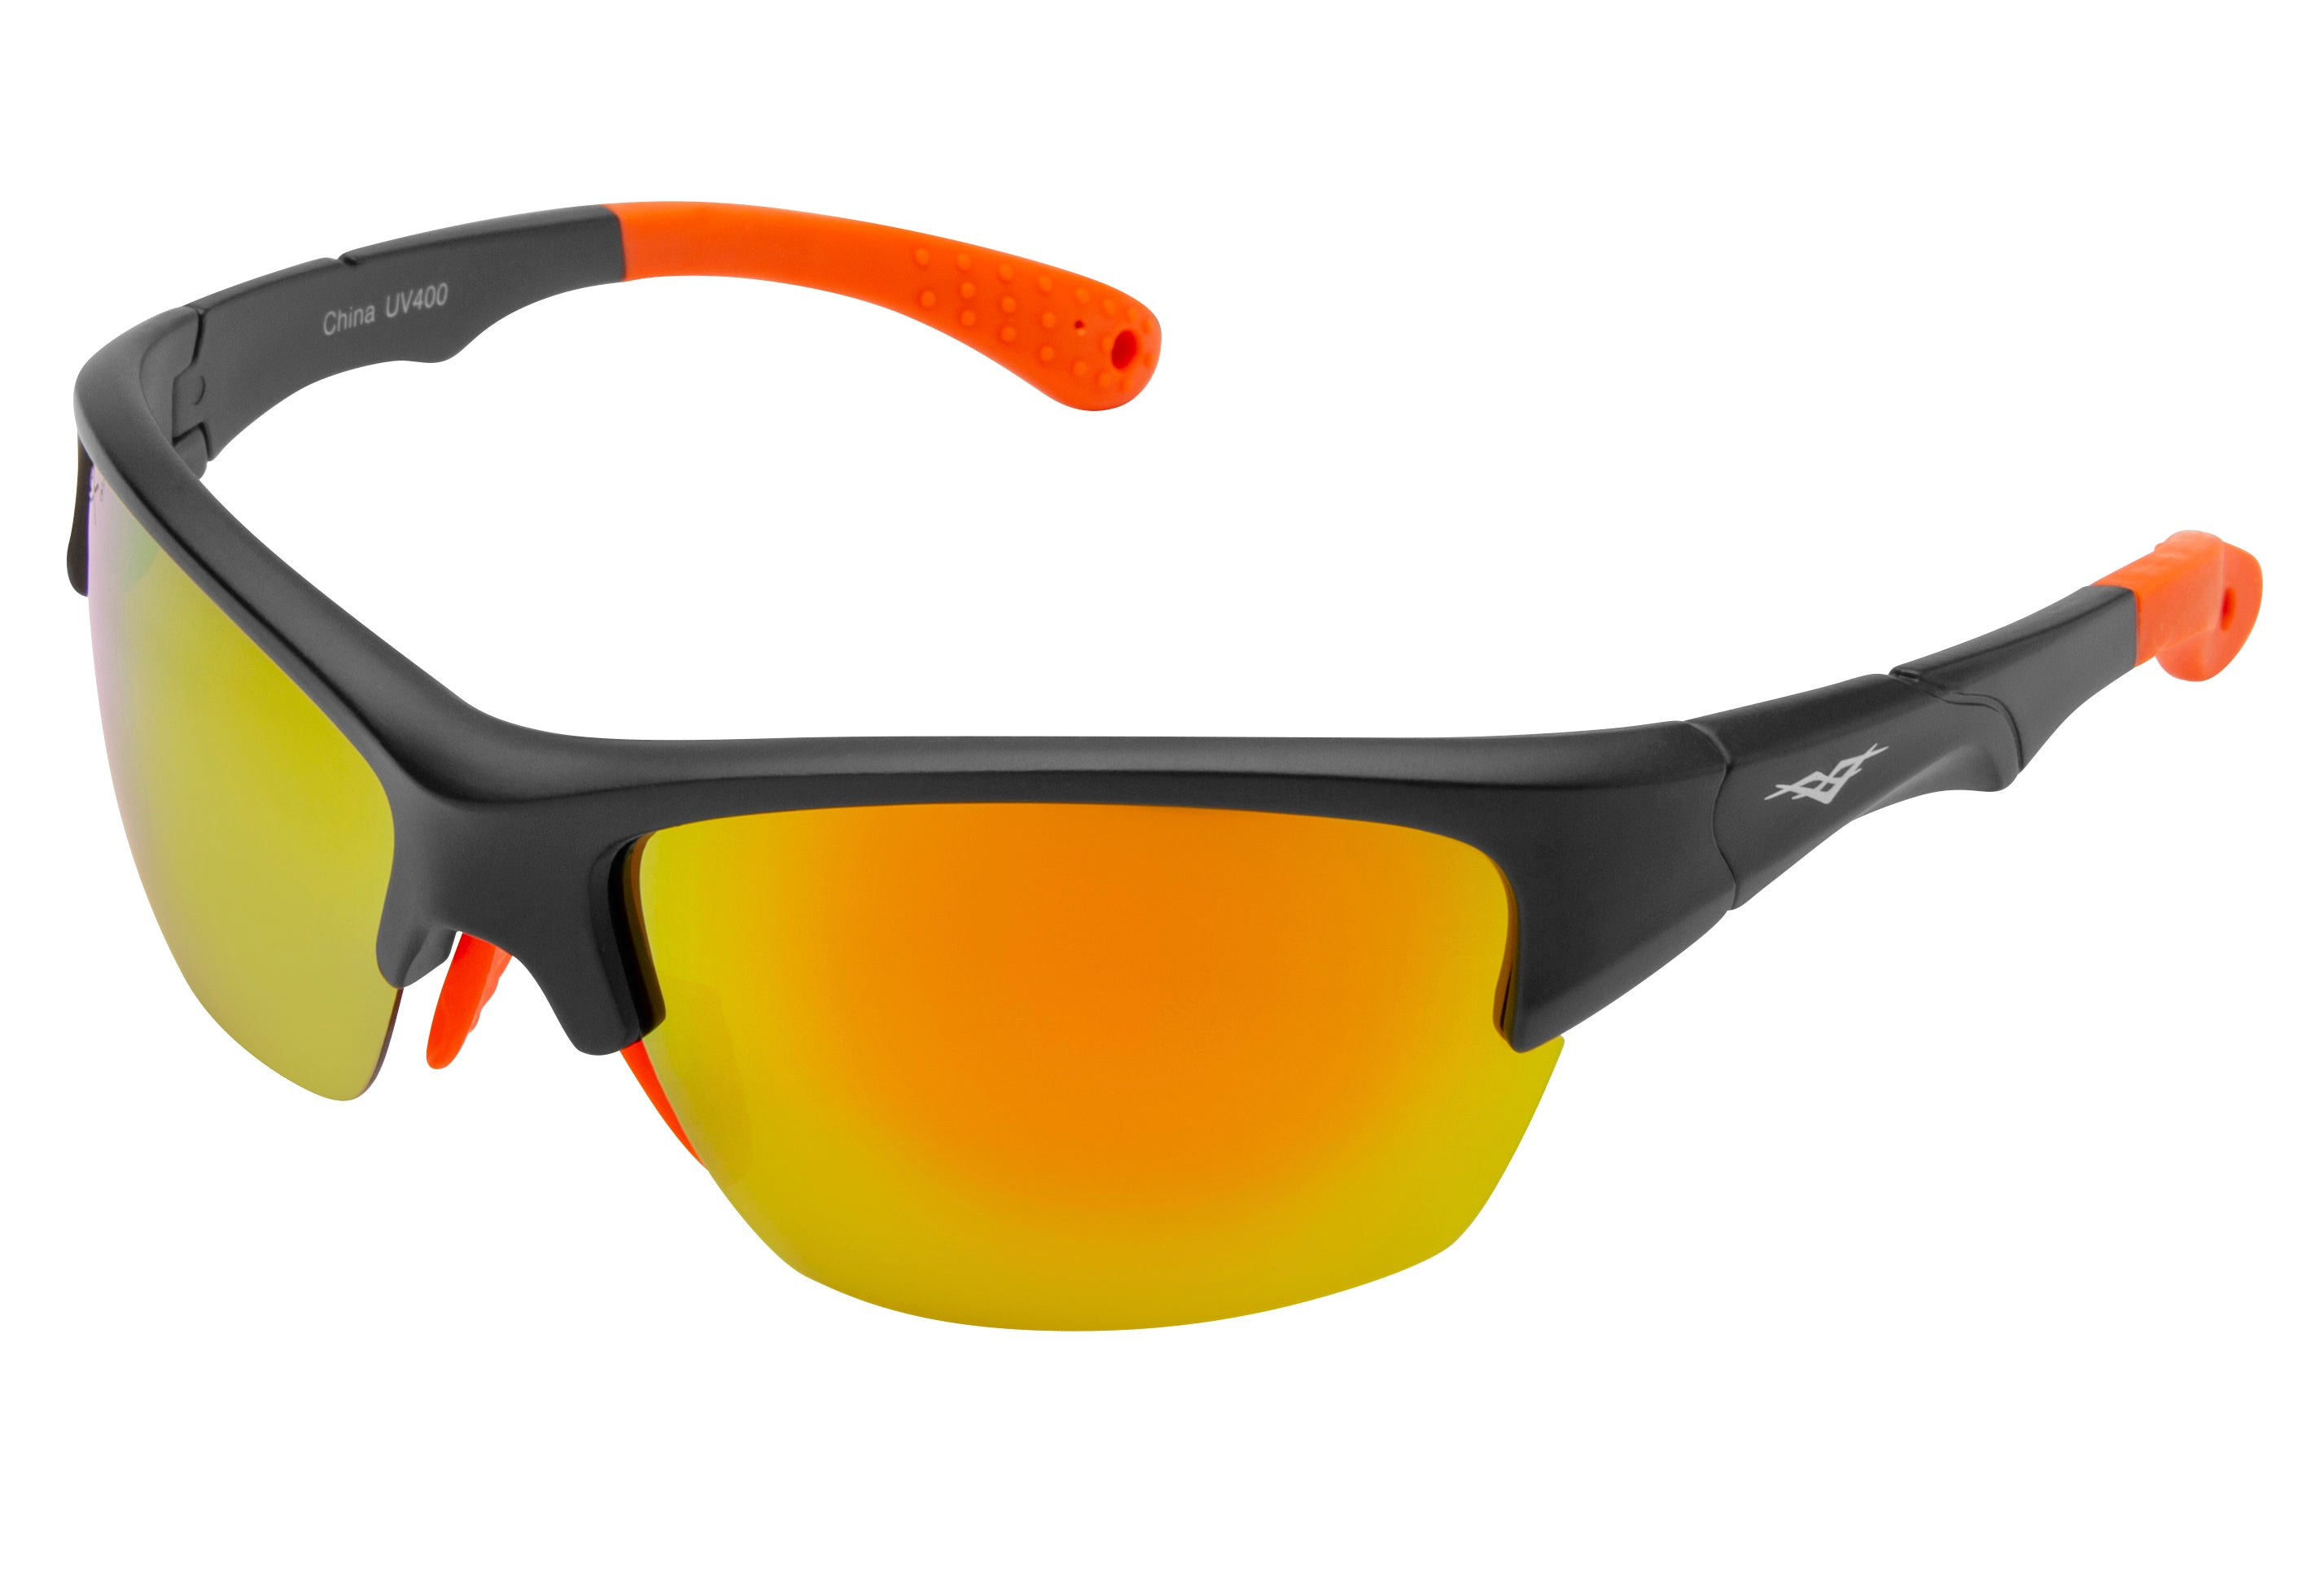 5103 PVXL - PolarVXL XL Polarized Sport Wrap Sunglasses